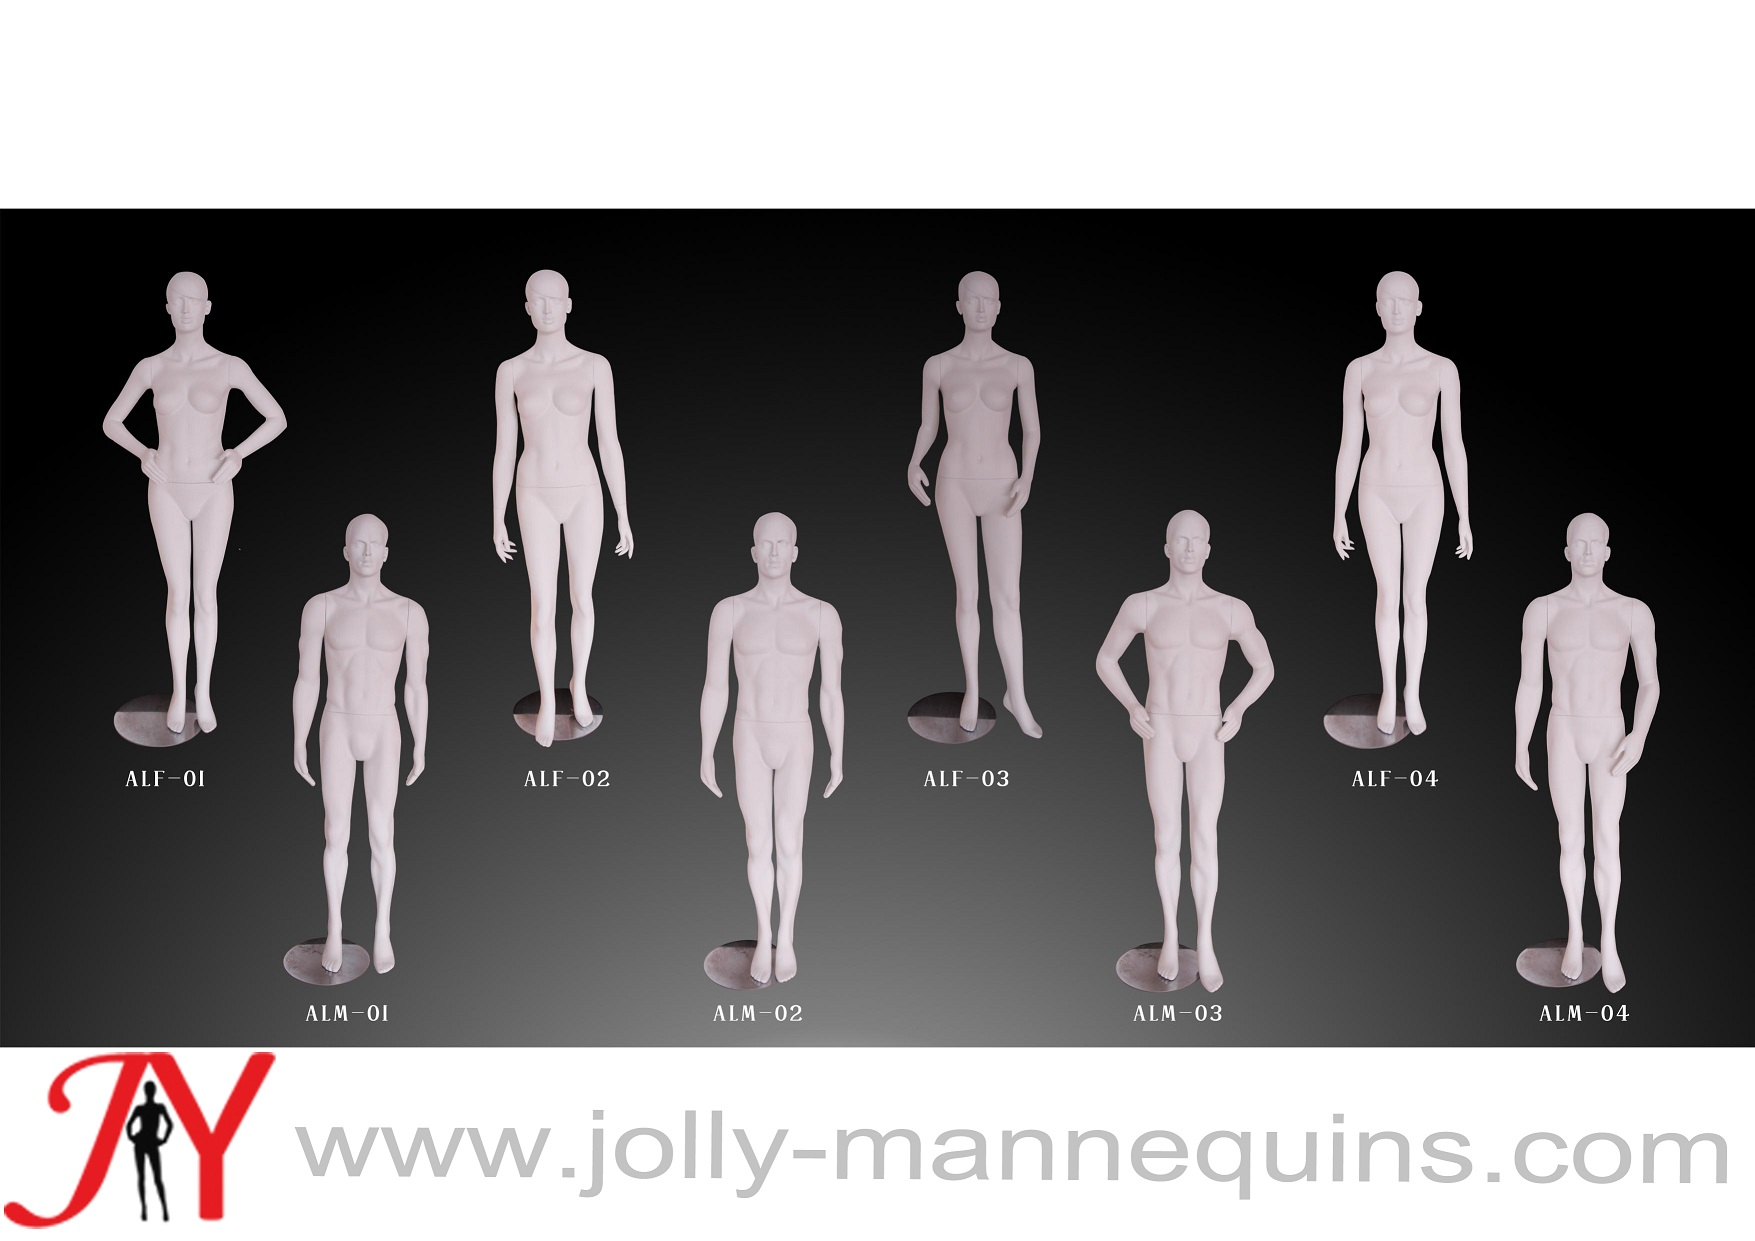 sell jolly mannequins male realistic hair head mannequin classic white matt color ALM collection